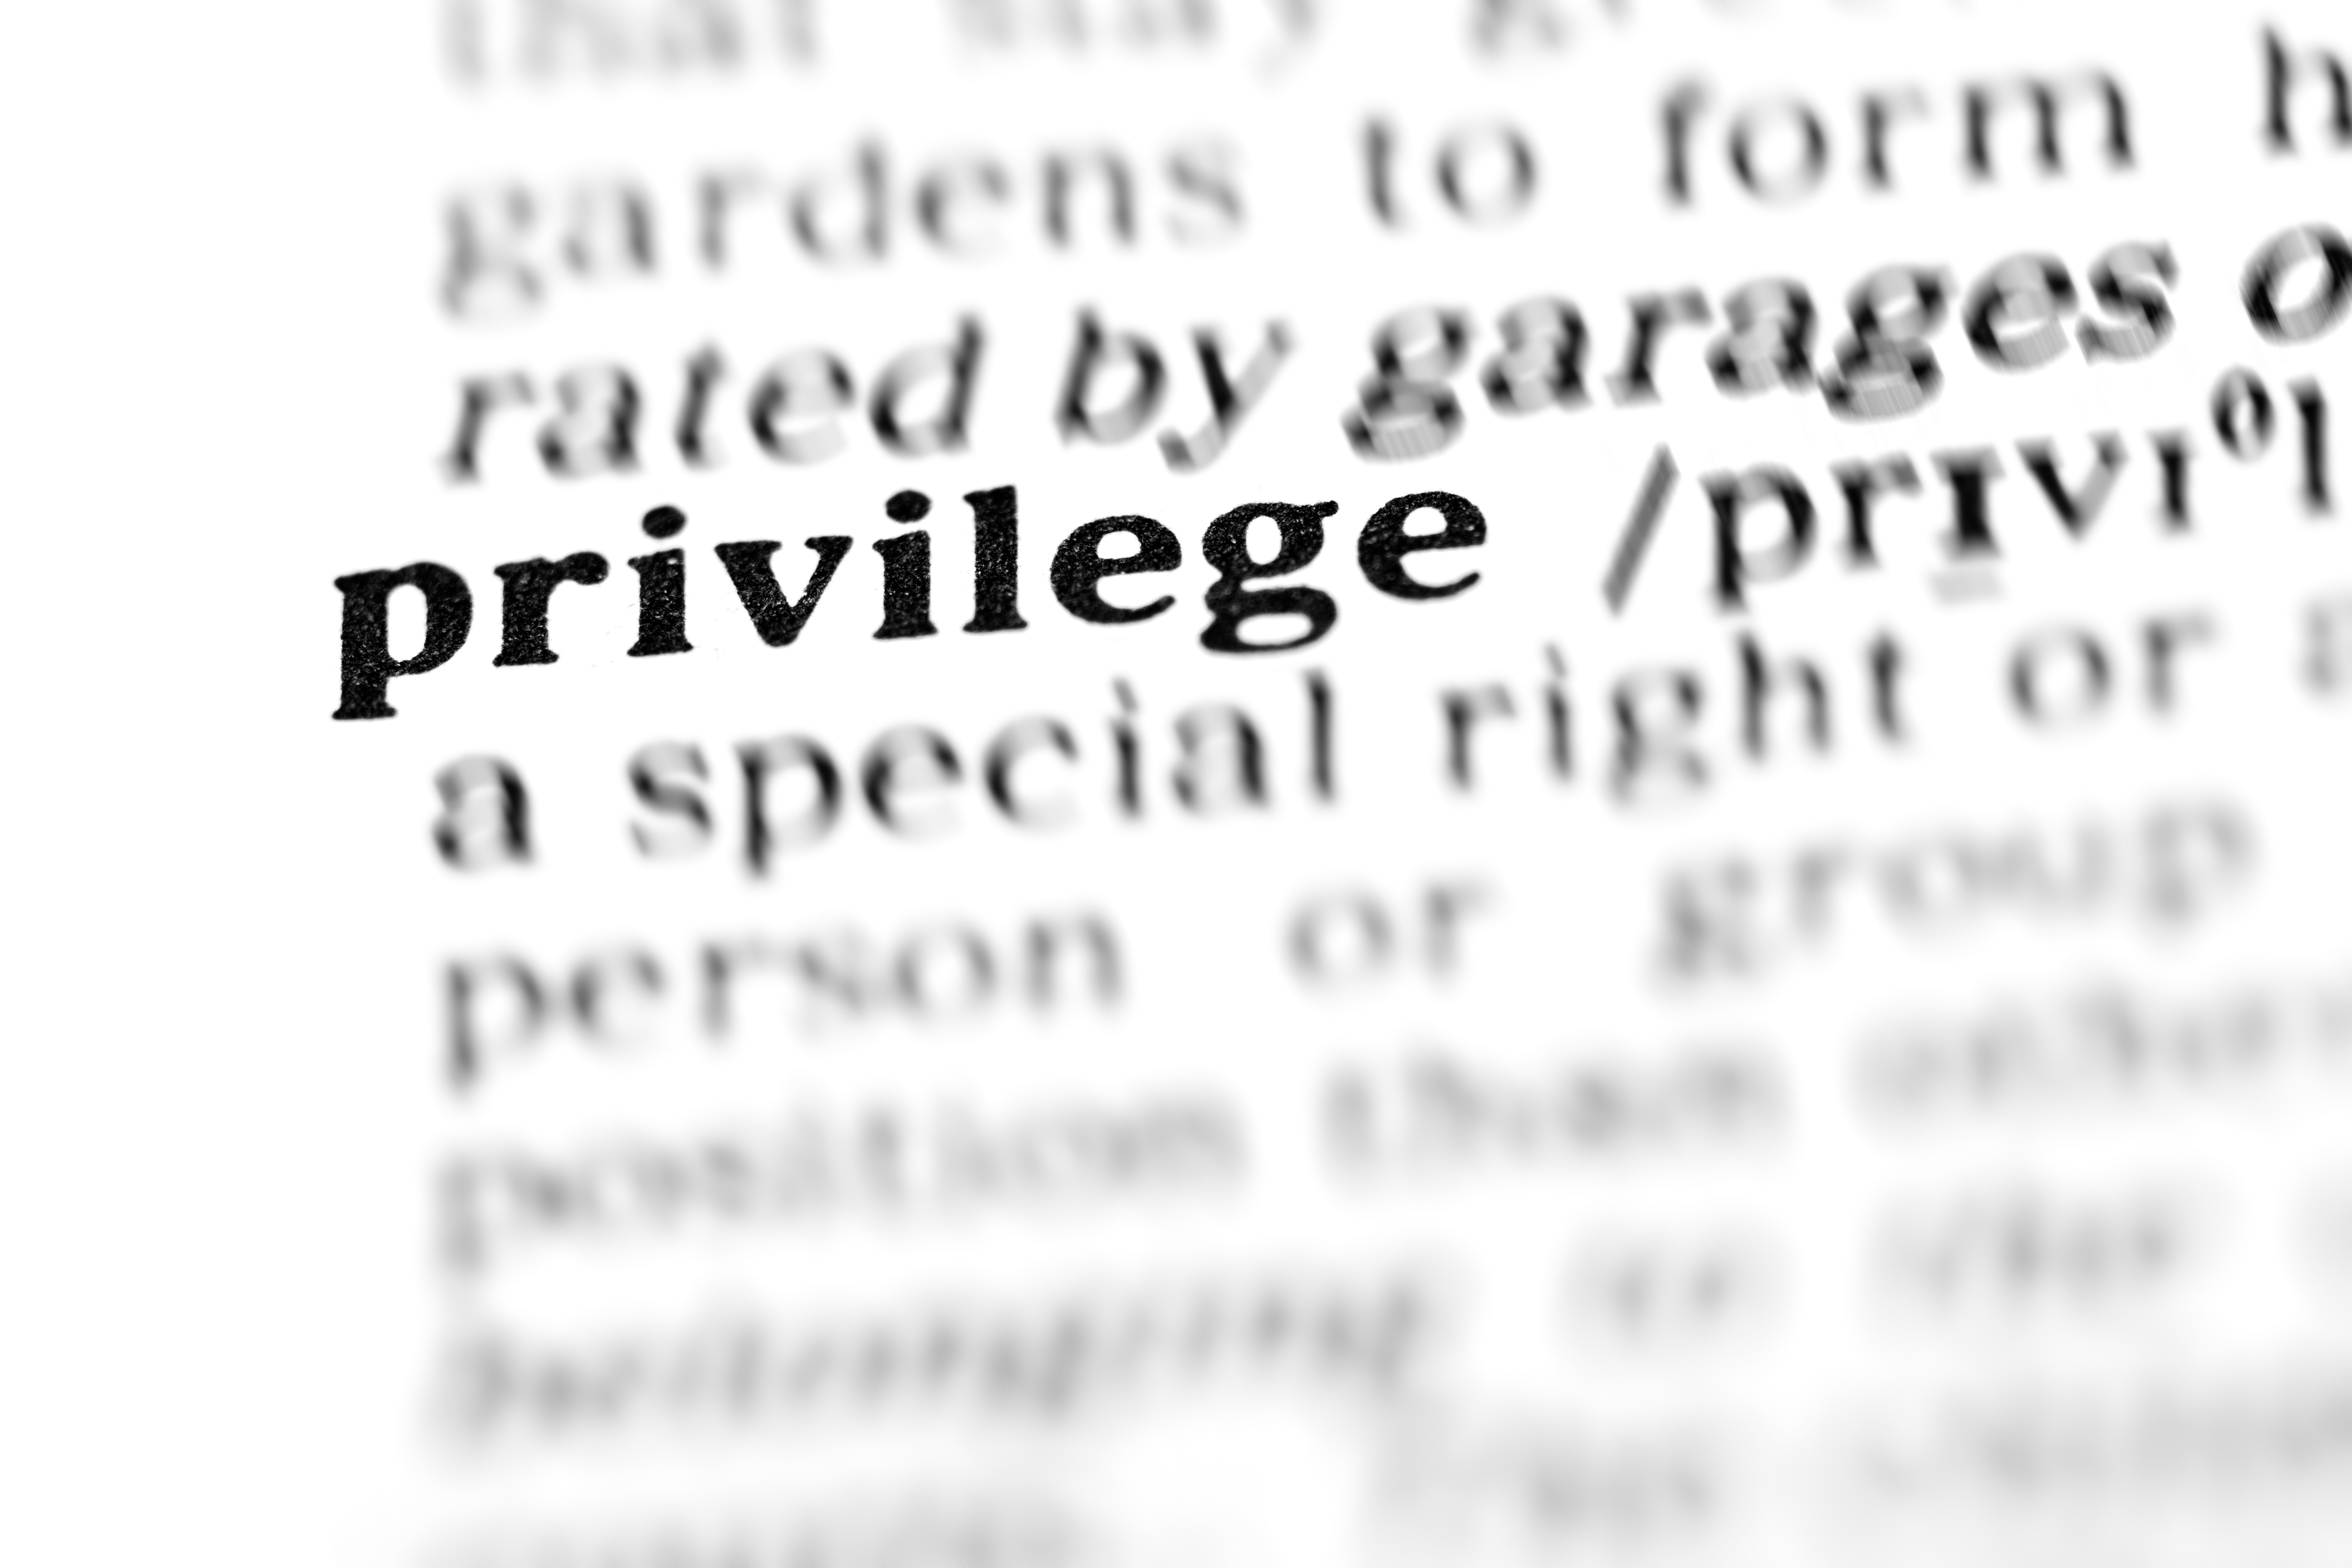 white privilege in american society essay White privilege in american society white american privilege is the result of a country developing around a racially charged society featuring whites on top since the inception of colonial america, whites heeded themselves as the superior race.